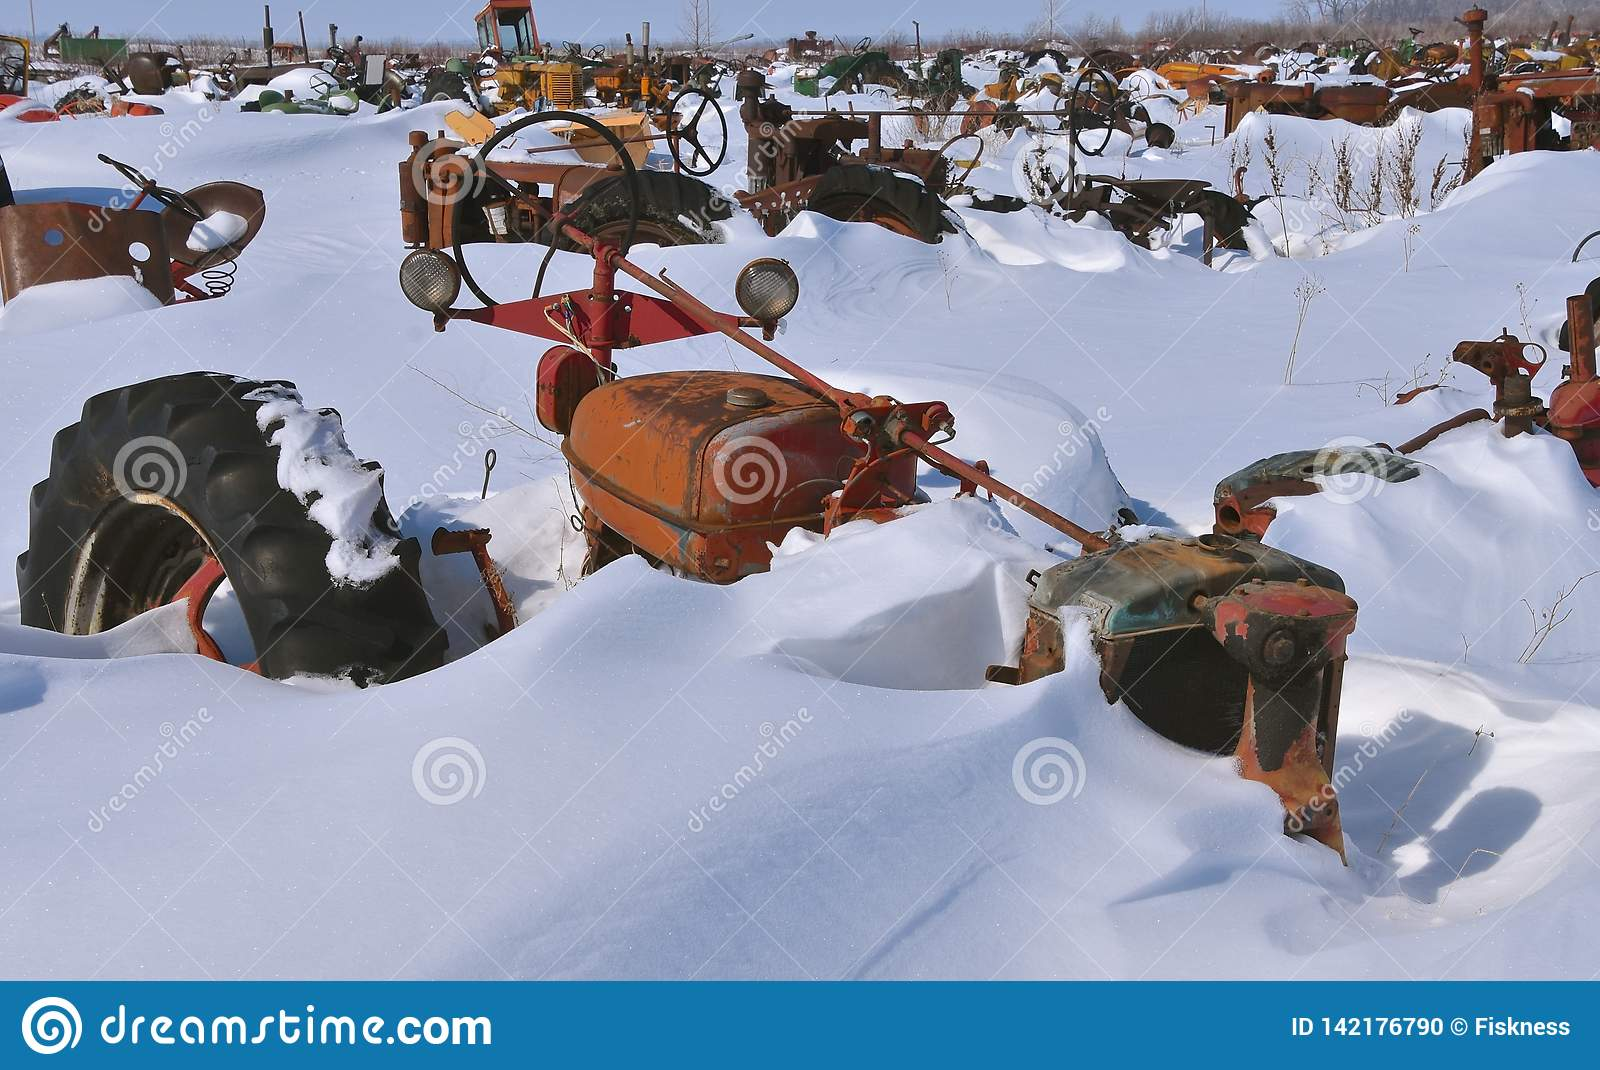 Tractors Buried In The Snow Stock Photo - Image of grill